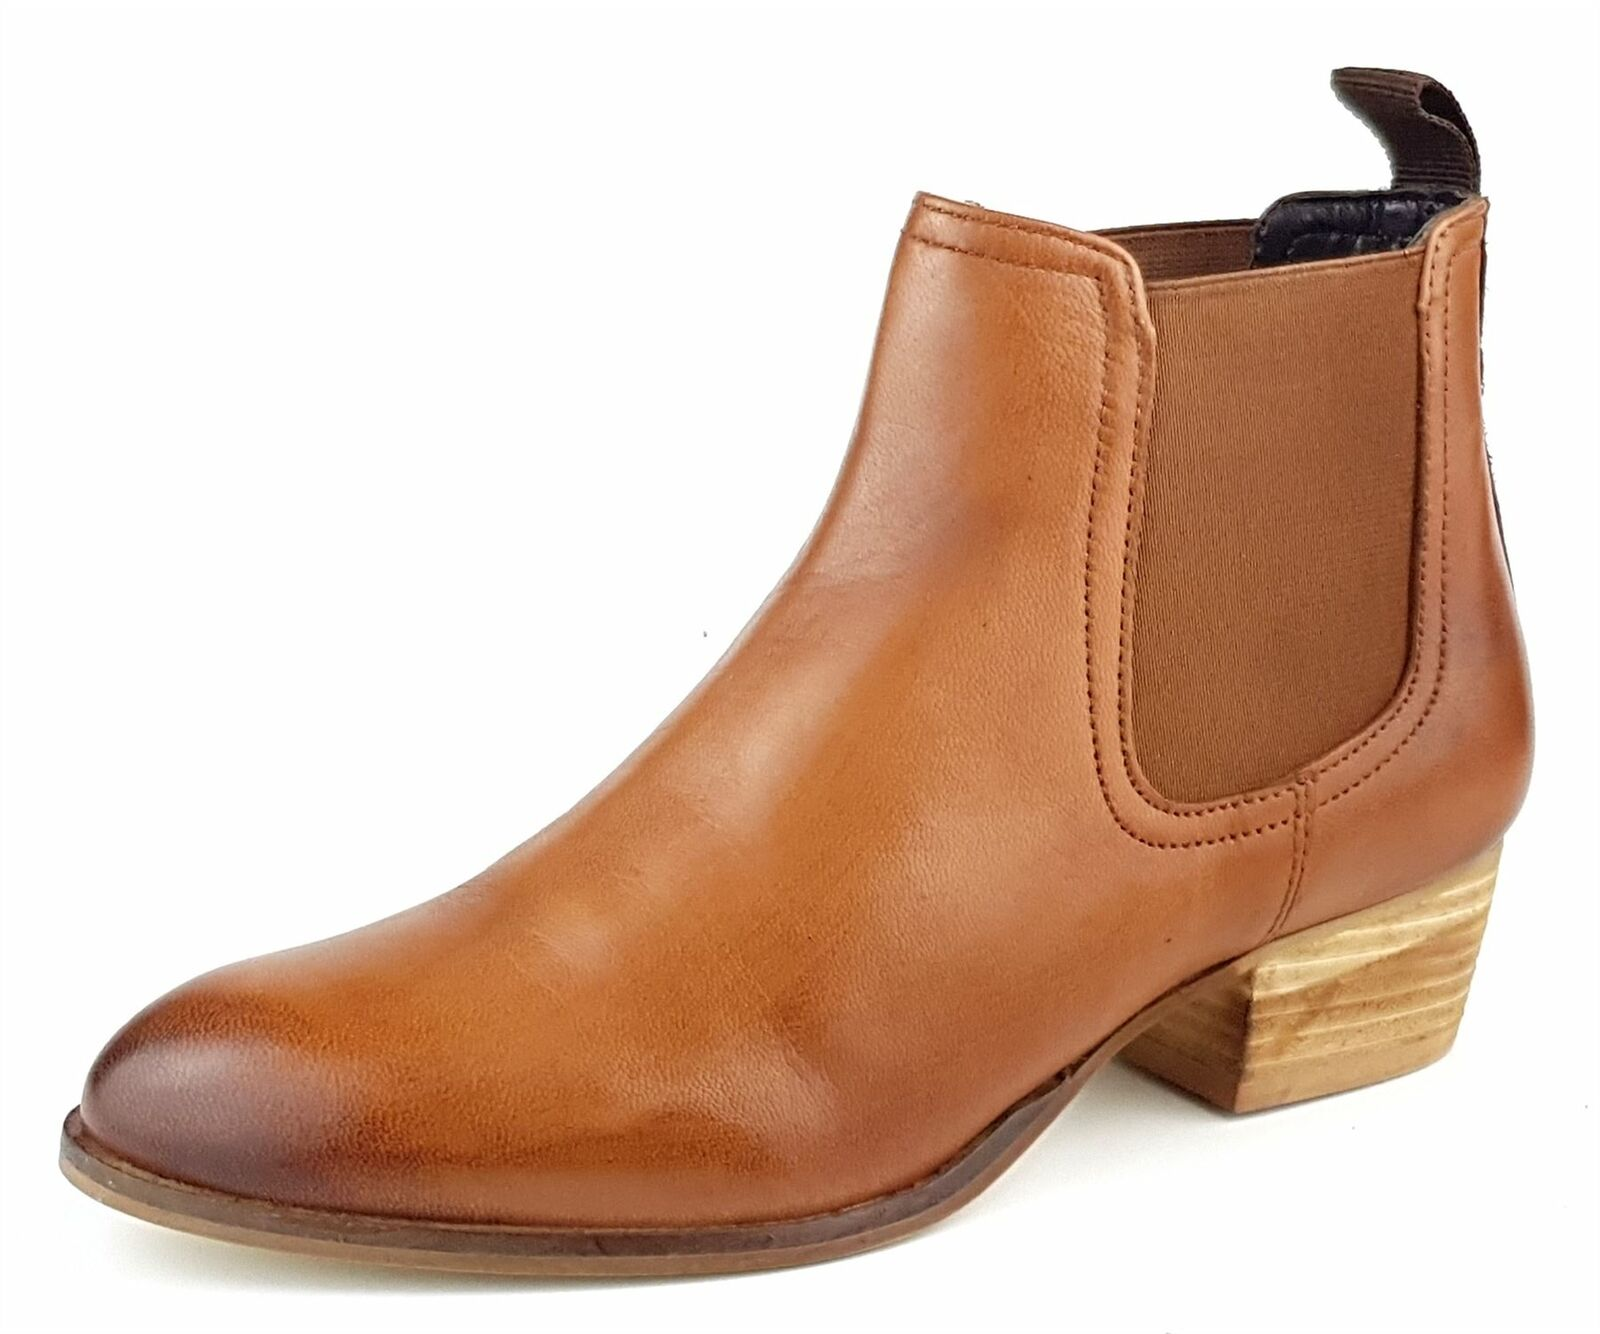 Frank James York Ladies Womans Tan Leather Chelsea Pull On Ankle Heel Boots